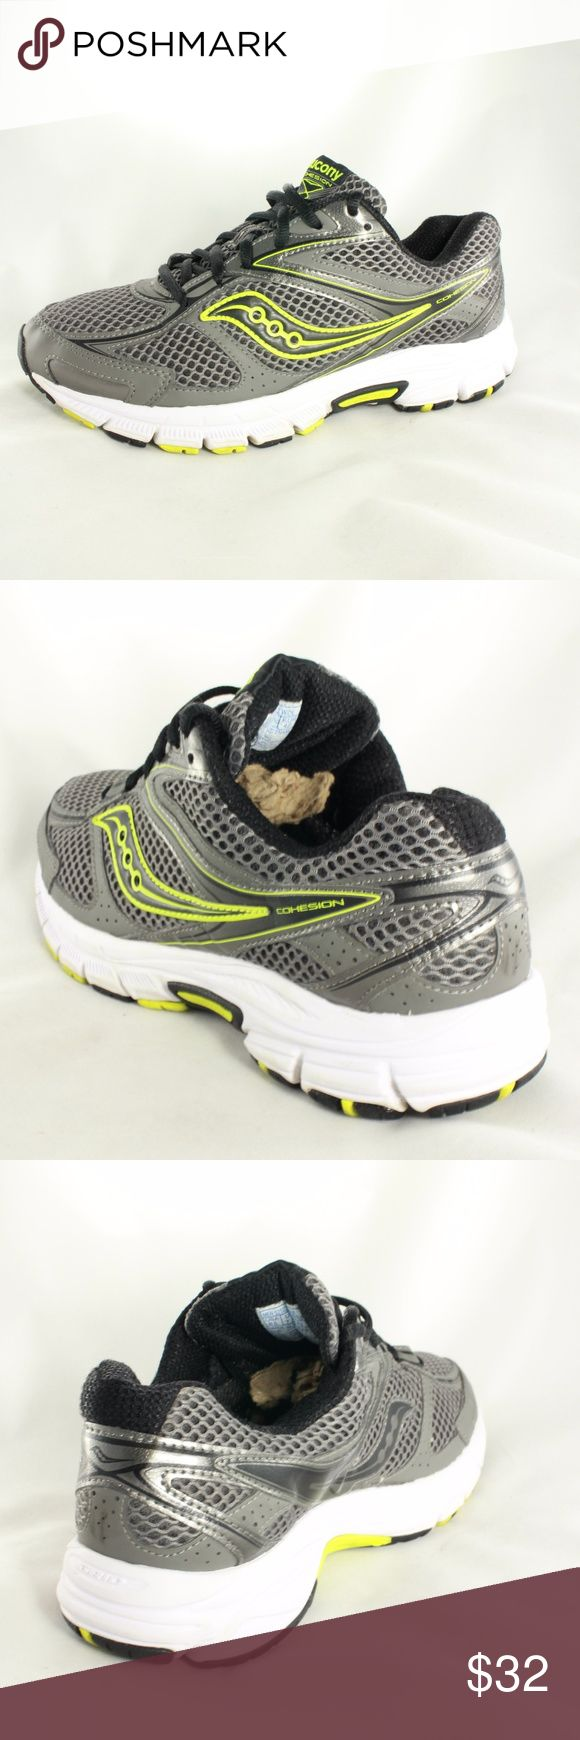 Saucony Cohesion 9 Gray Neon Running Shoe 8.5 WIDE Highly rated 4.5/5 stars for this particular Saucony running shoe by all owners. Great support and energy transfer! Upper condition is 10/10 with no damage. Sole is 9/10 with minimal normal wear. These are really comfortable running shoes! Size 8.5 WIDE Saucony Shoes Athletic Shoes